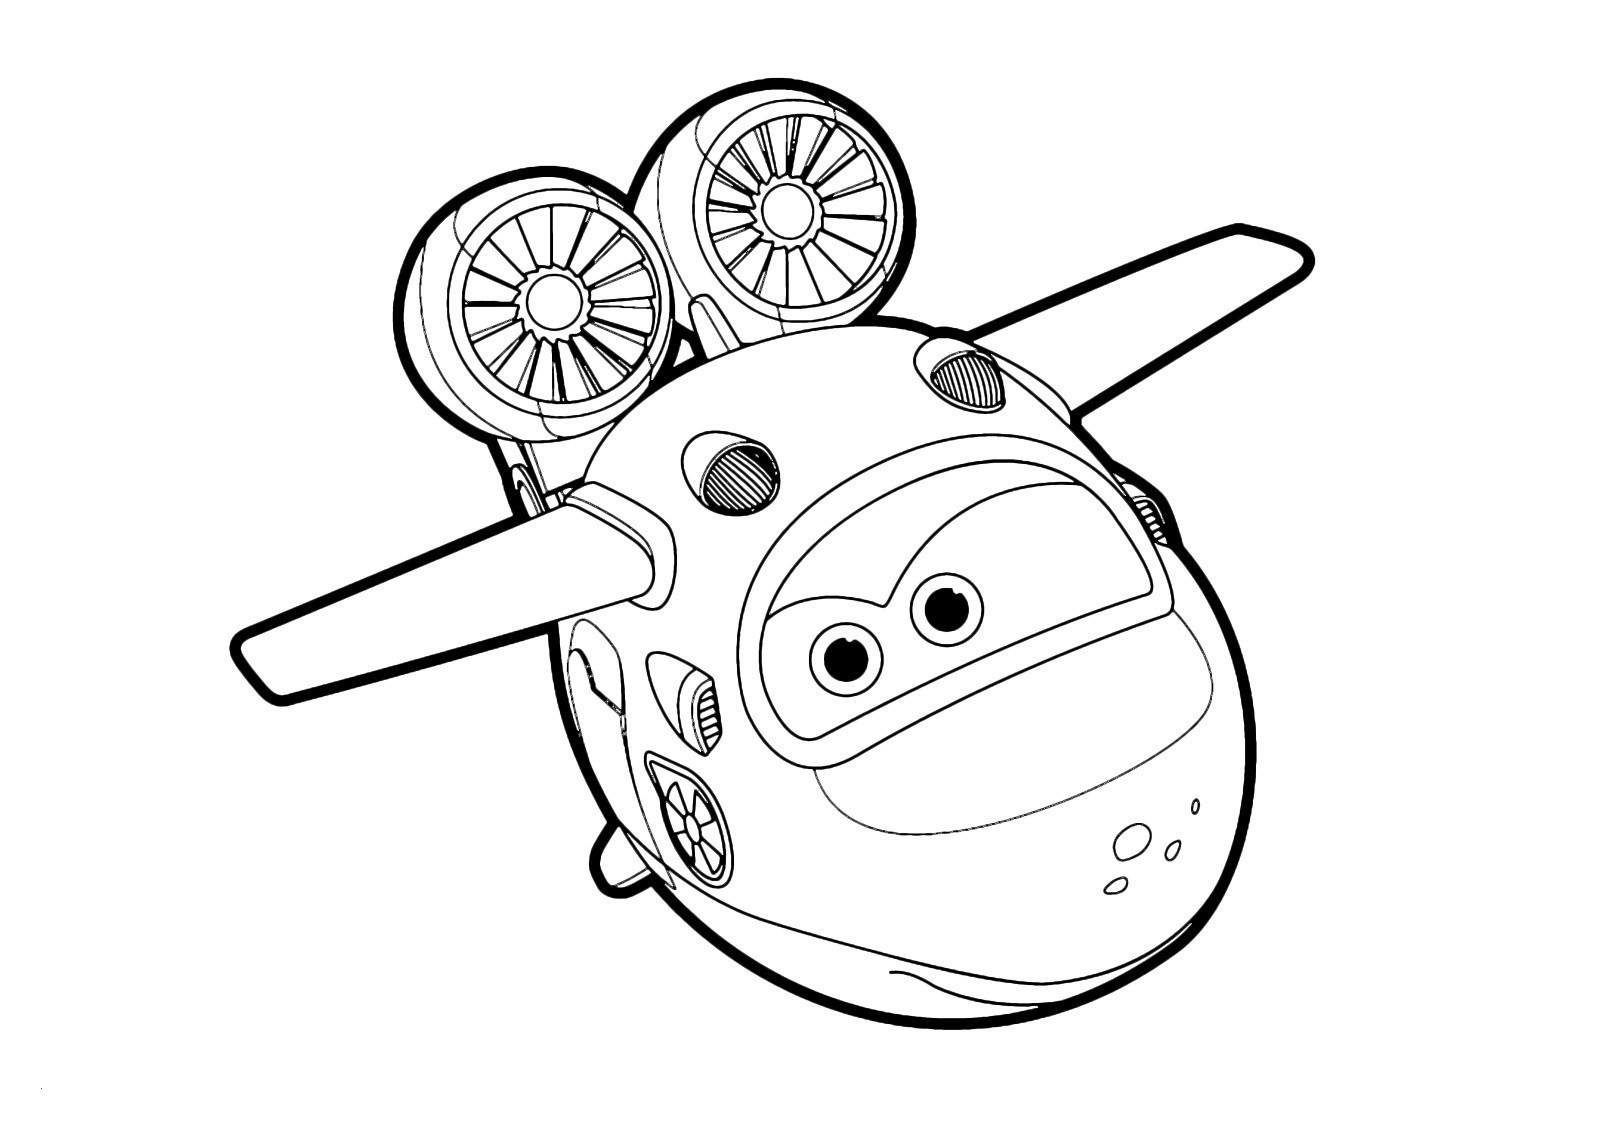 Super Wings Coloring Pages Inspirierend Ausmalbilder Super Wings Frisch Fresh Super Wings Coloring Pages Bilder